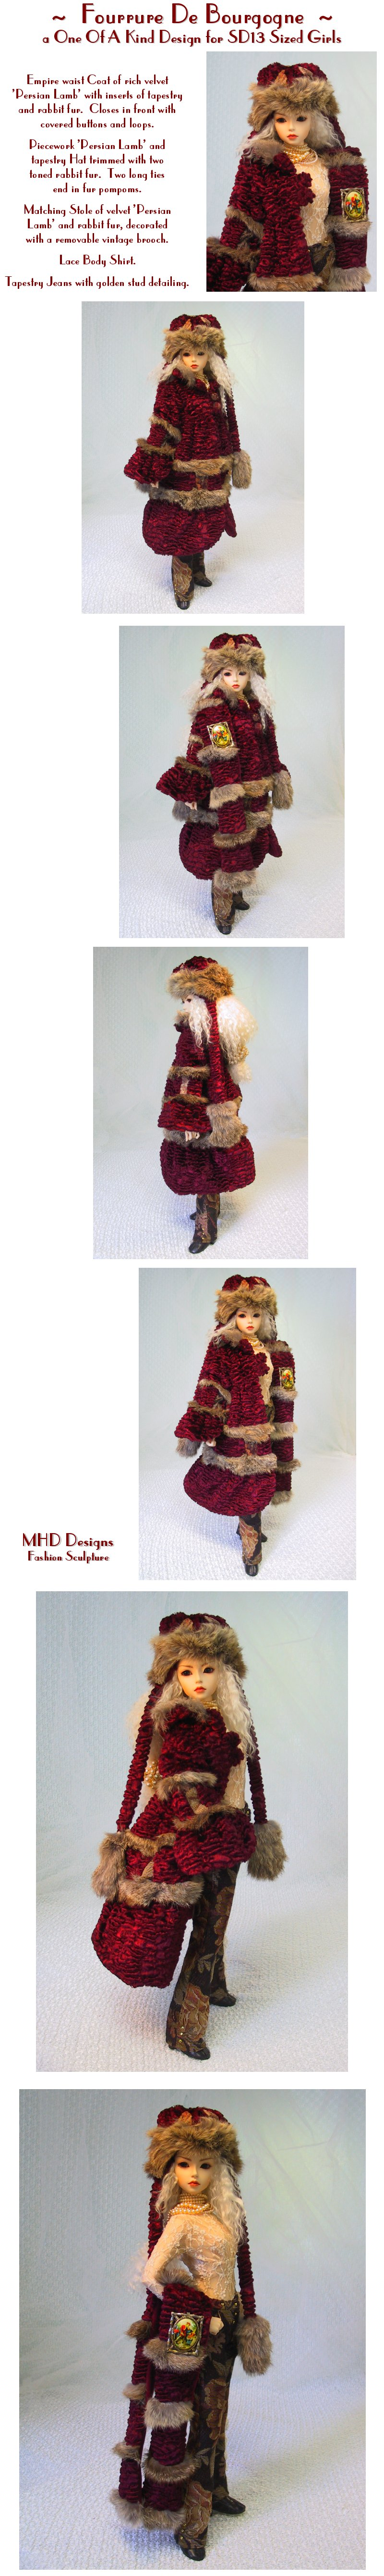 Fur From Burgundy - an OOAK Design by MHD Designs - 7 High Resolution Photographs, your patience is appreciated!